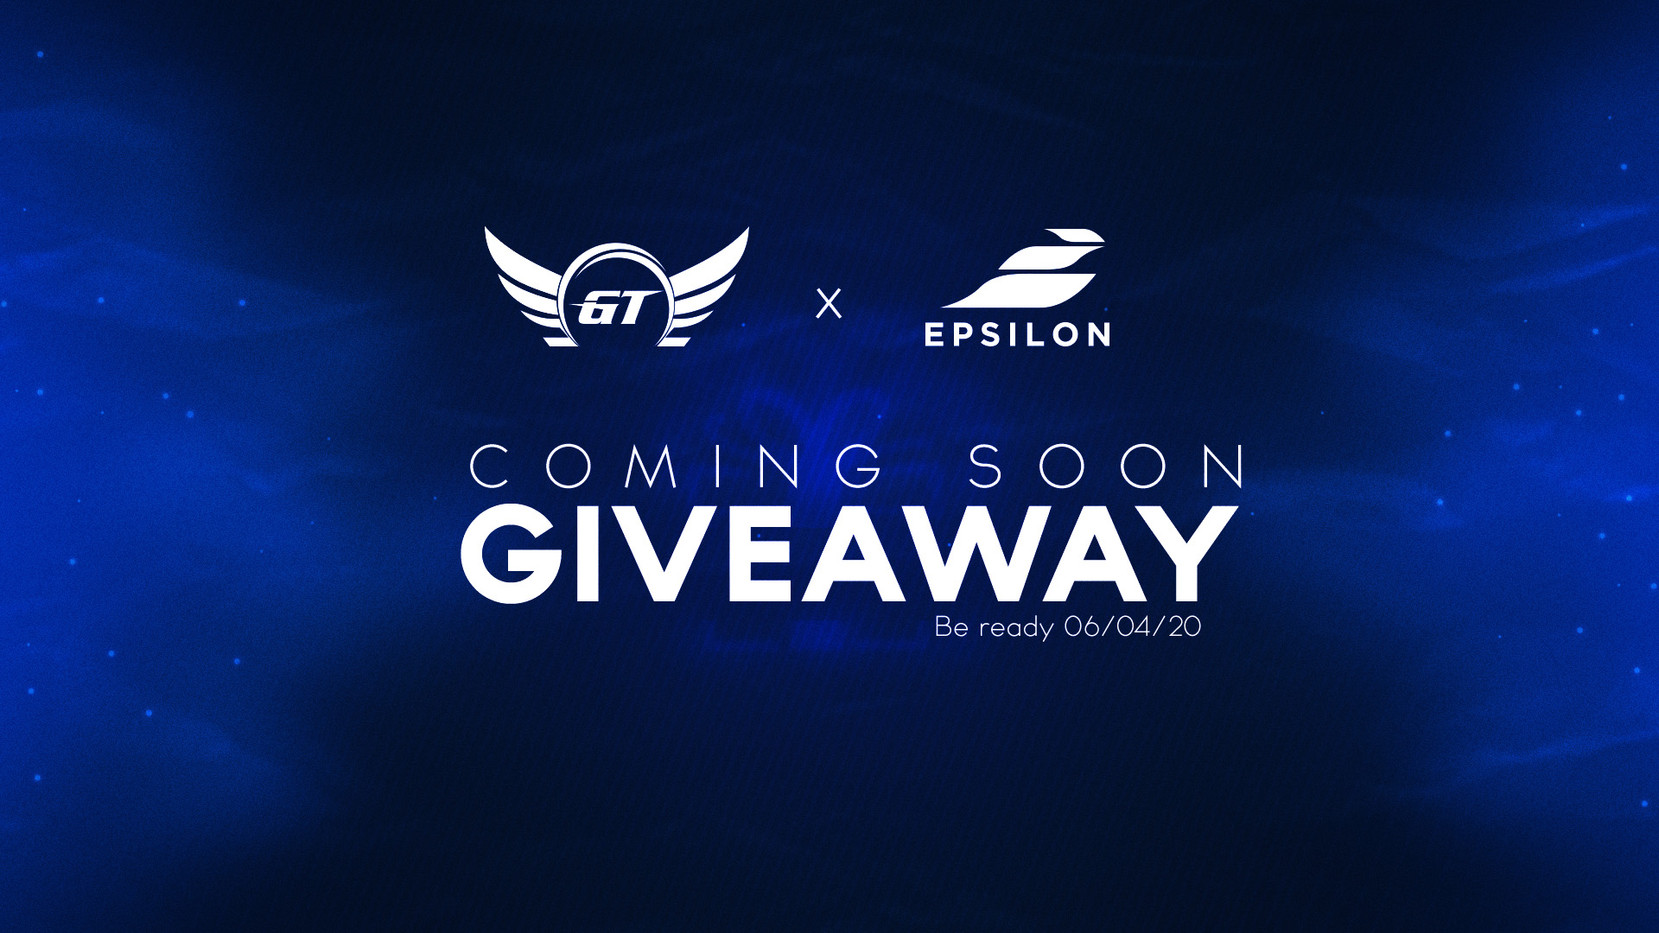 giveaway coming